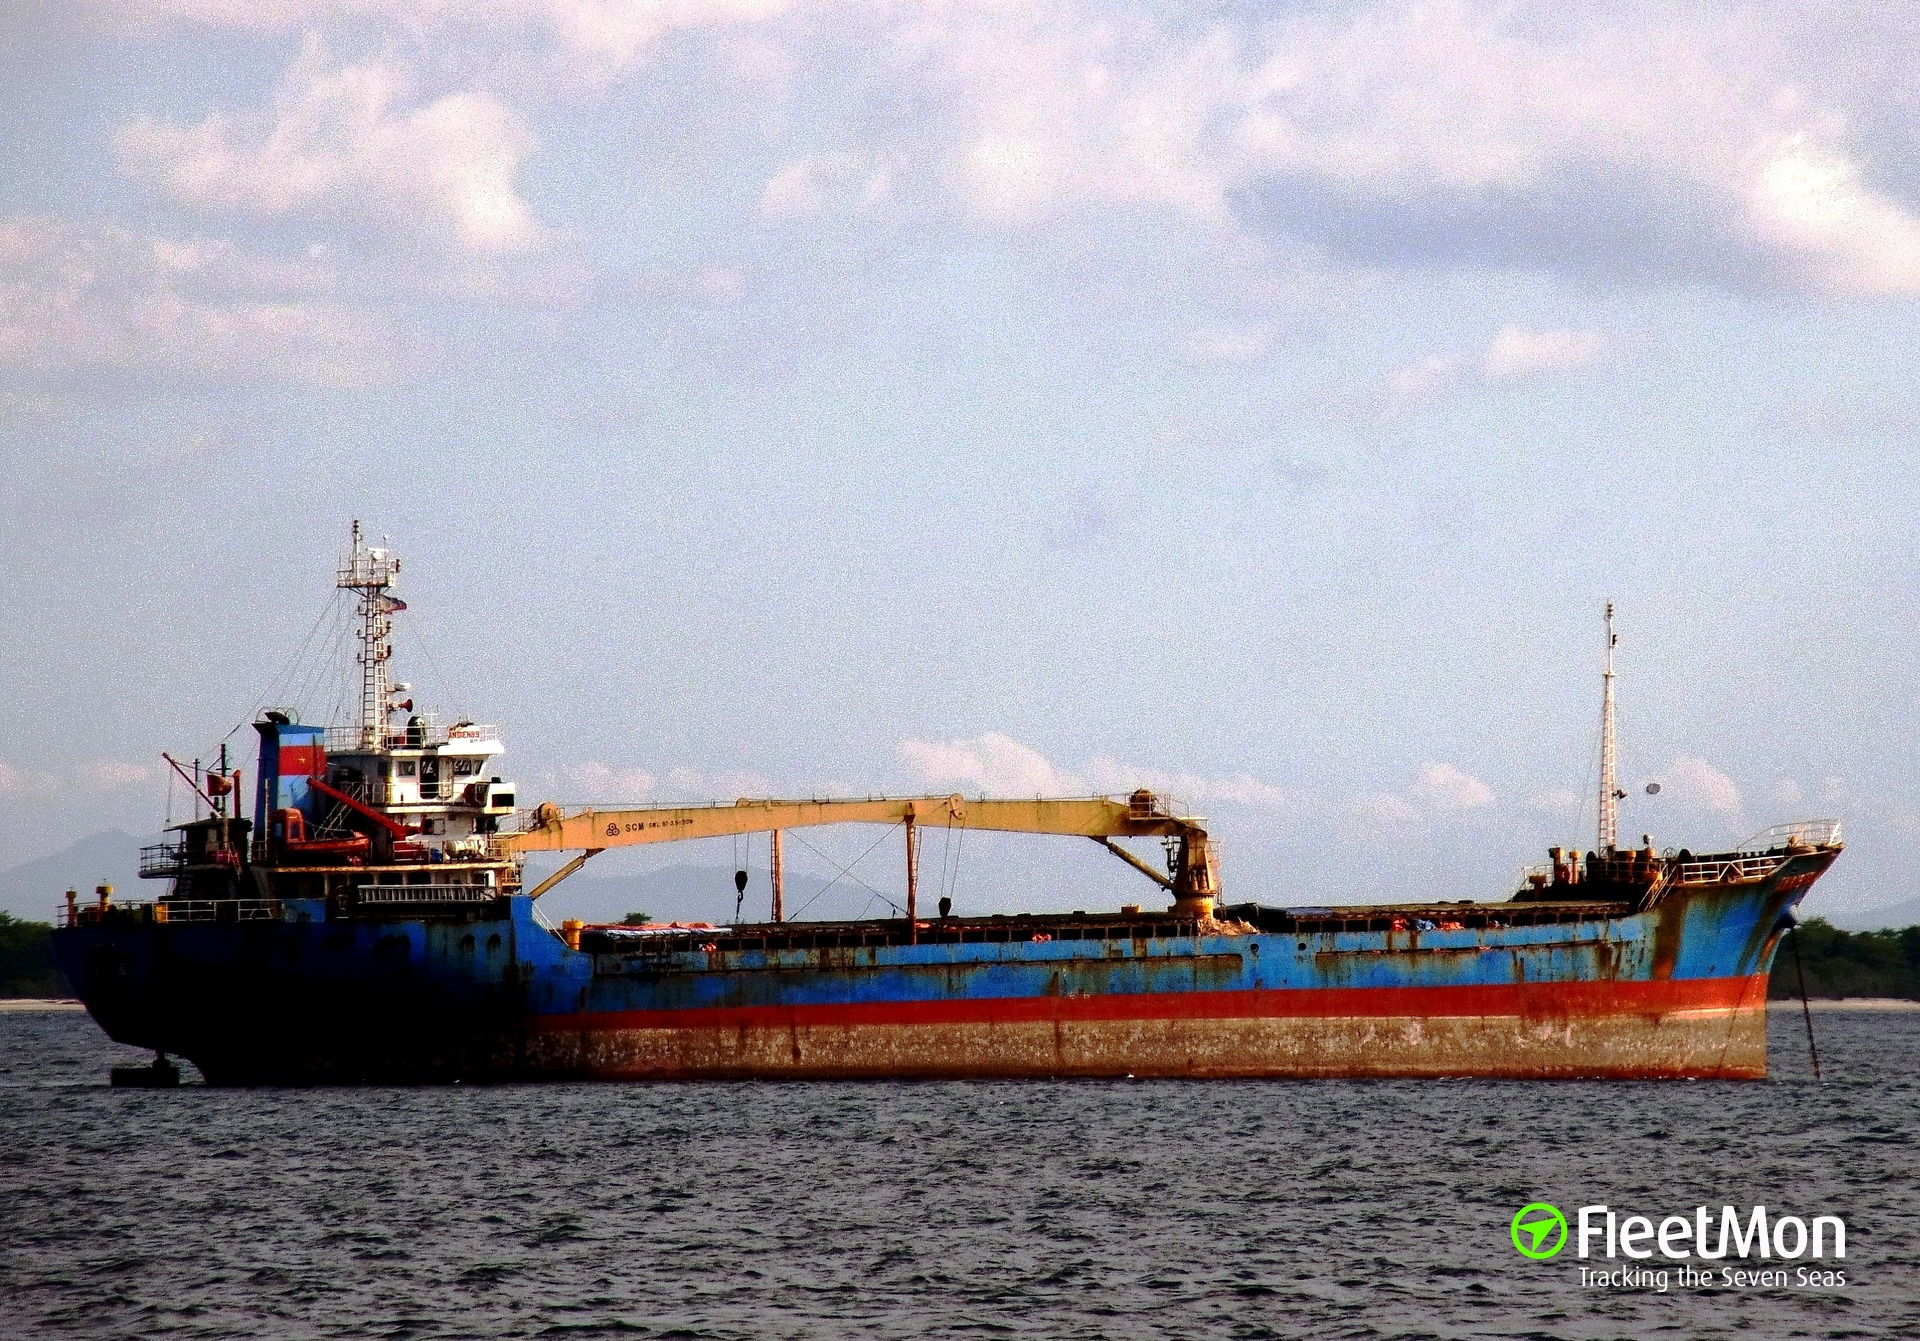 General cargo vessel An Bien 89 Alci arrested for smuggling, Philippine